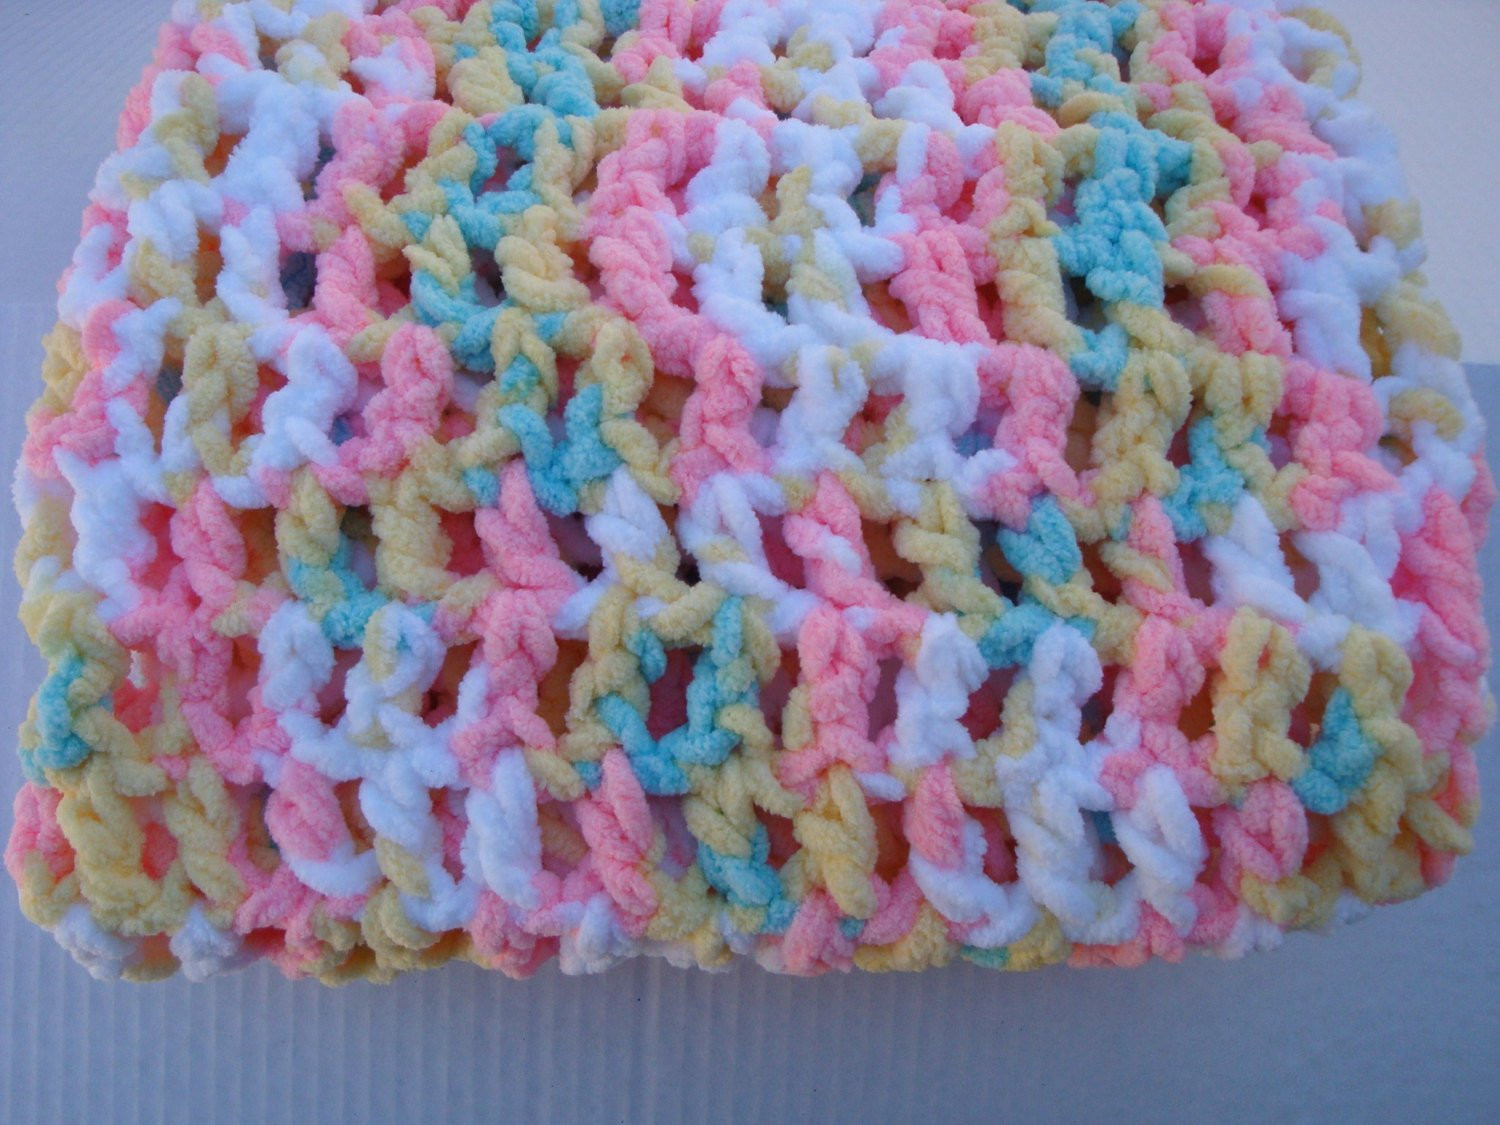 Inspirational Hand Crochet Items Crochet Baby Blanket Stroller Blanket Crochet Baby Items Of Marvelous 40 Pictures Crochet Baby Items